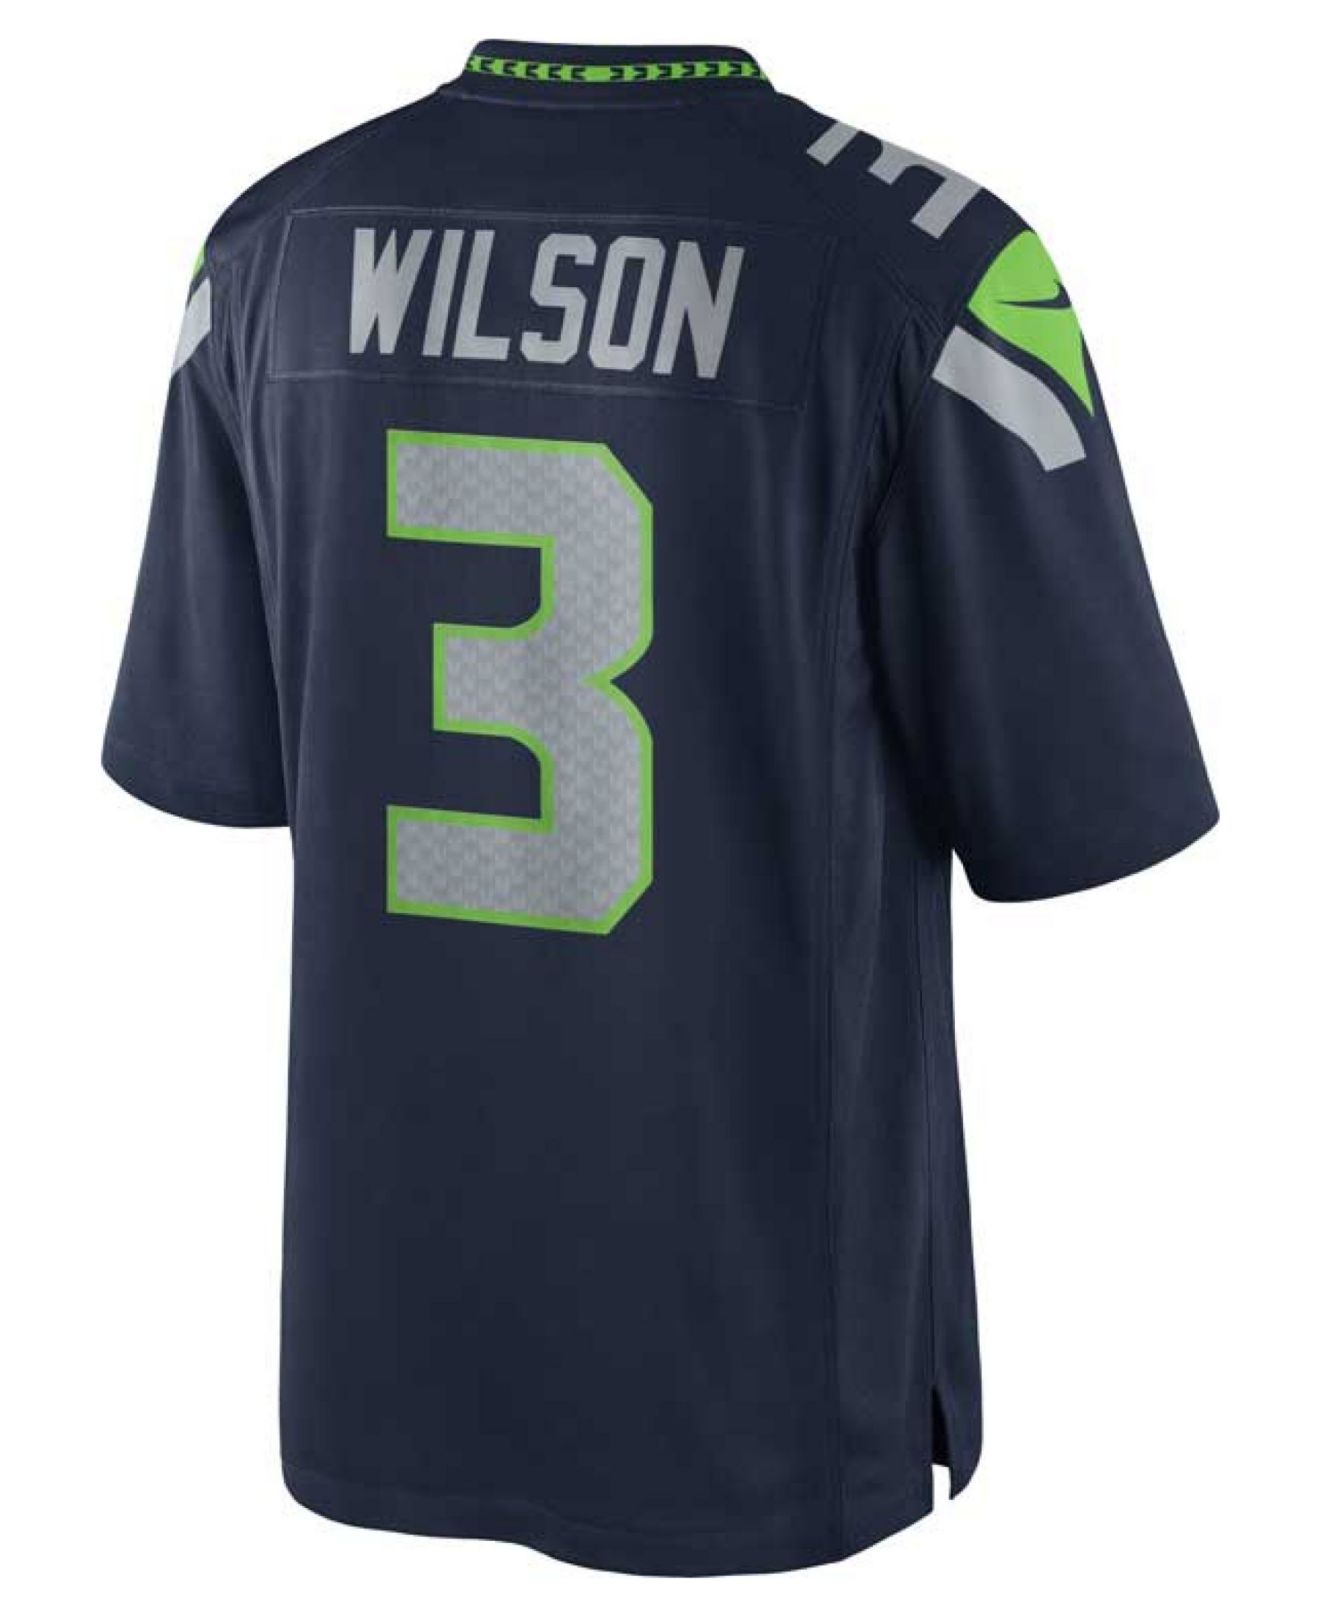 Seattle Seahawks Mens Polo Shirts